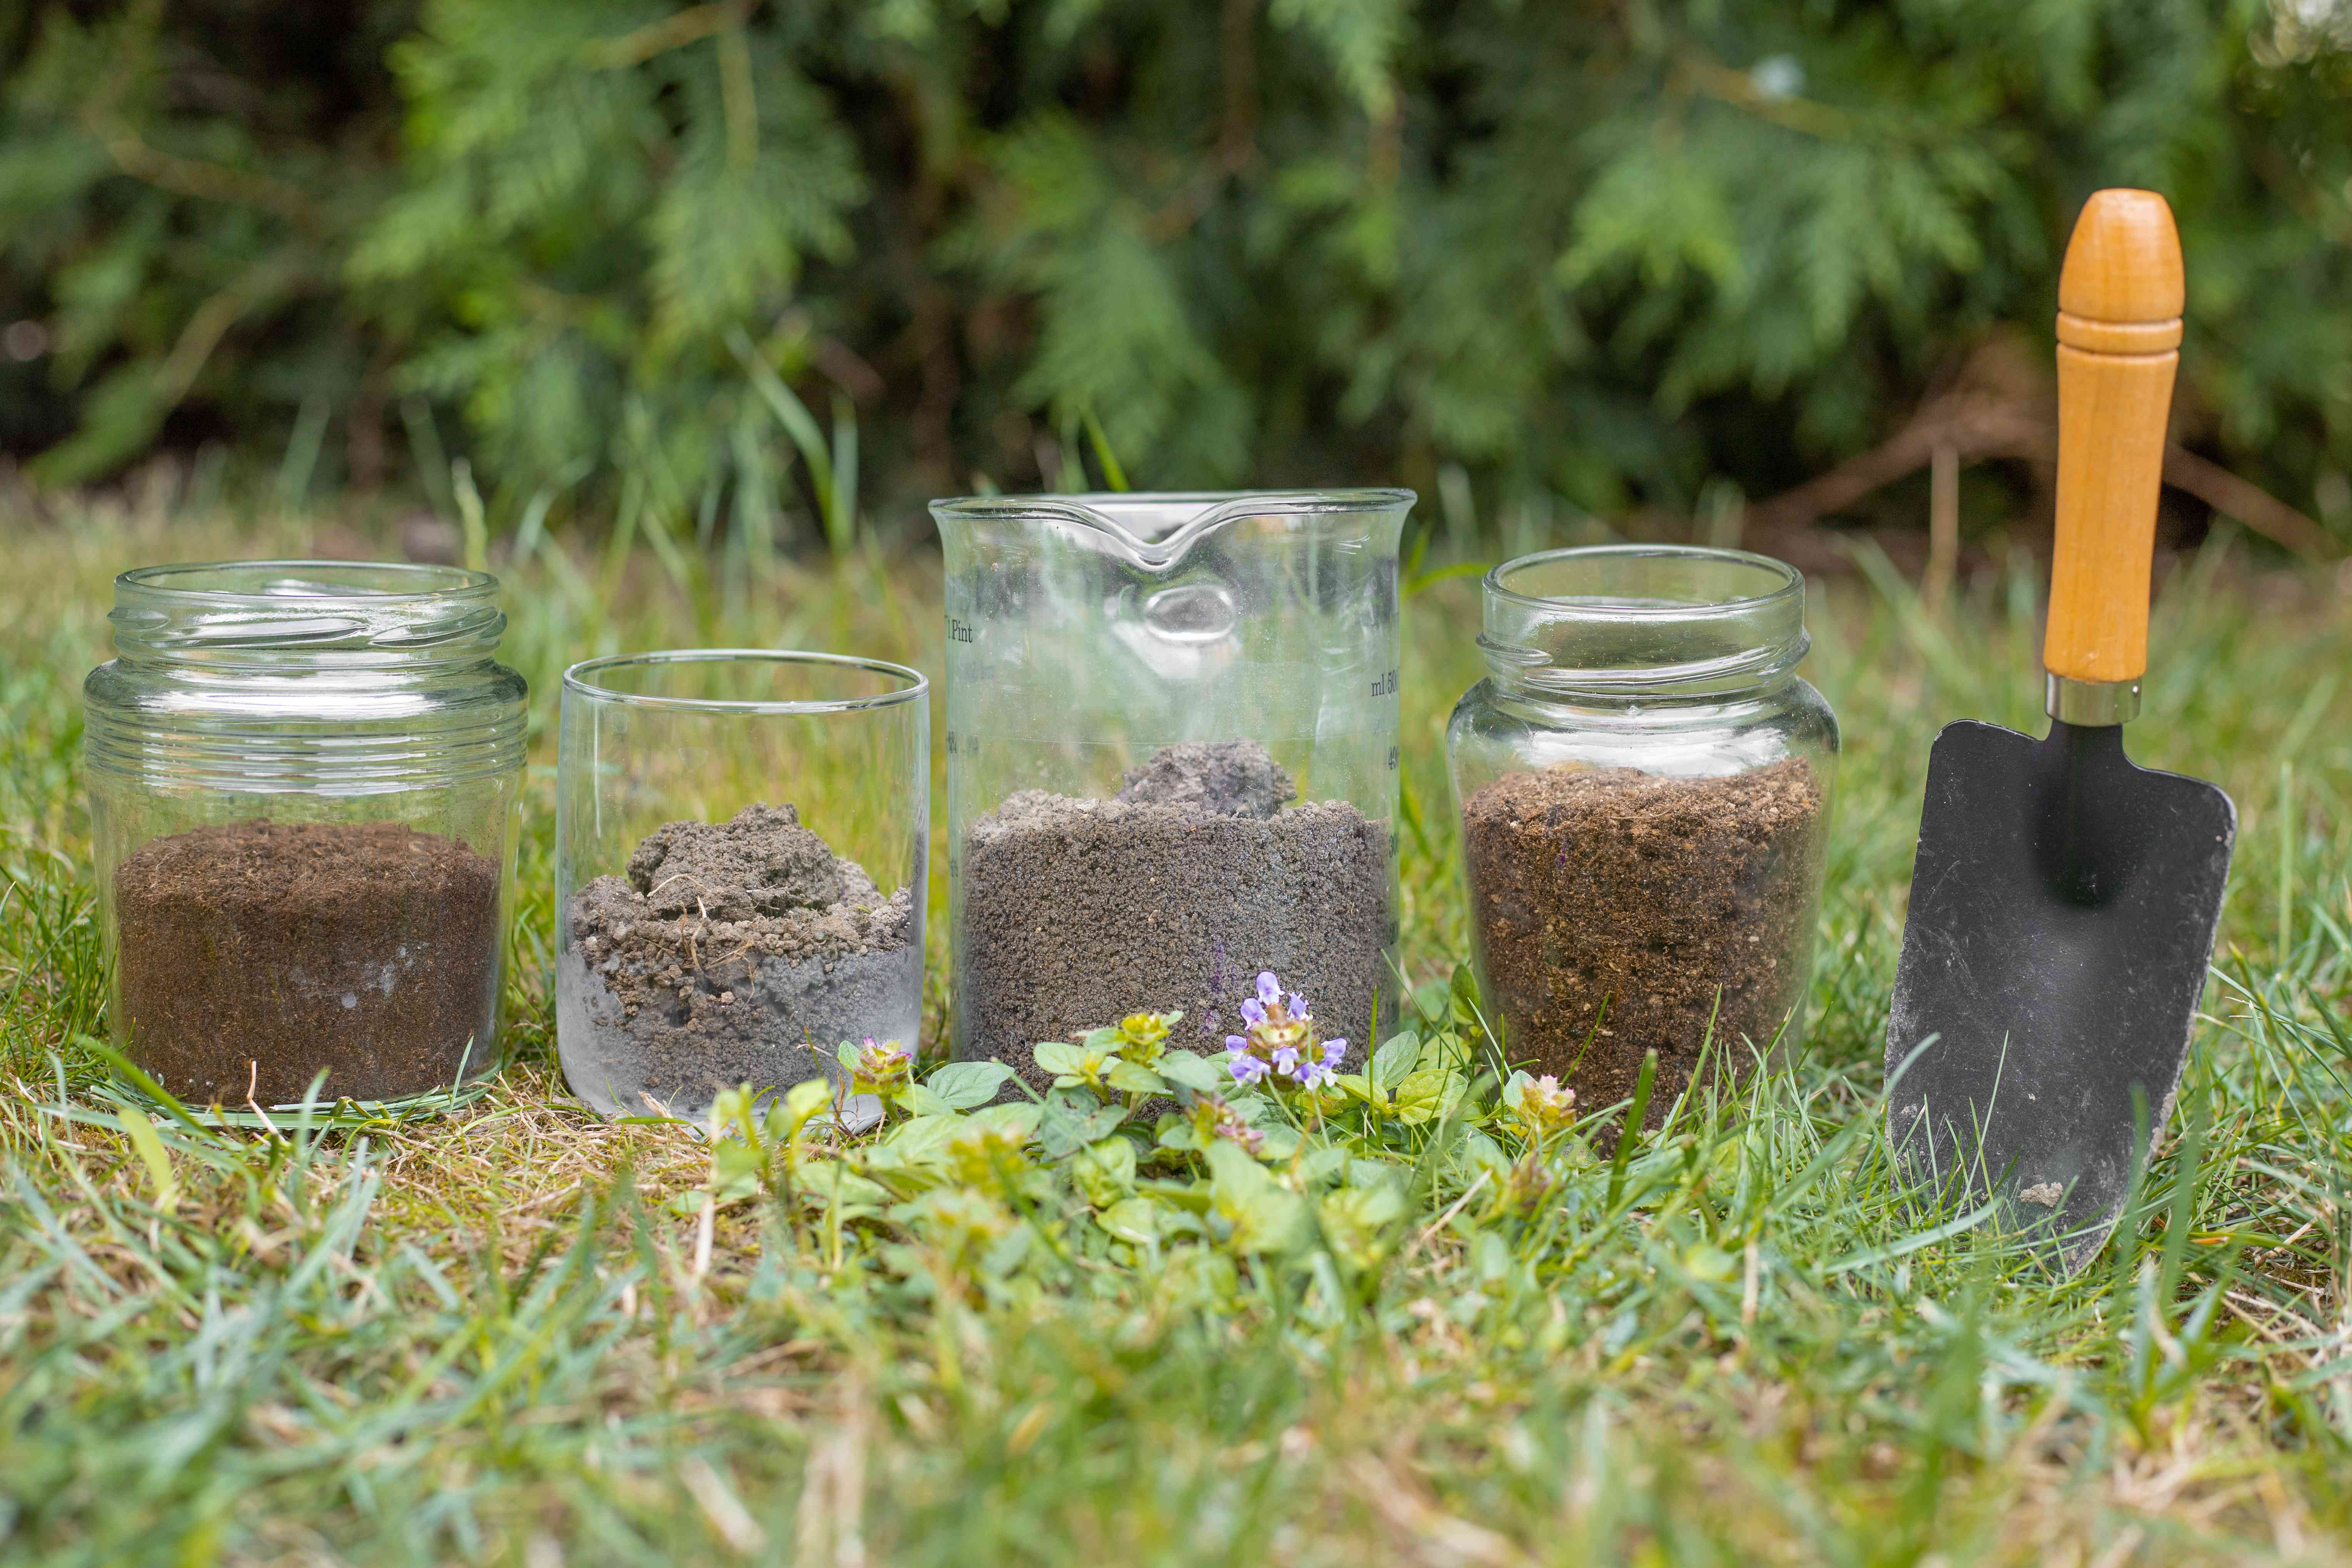 various soils in glass containers outside in grass ready for testing